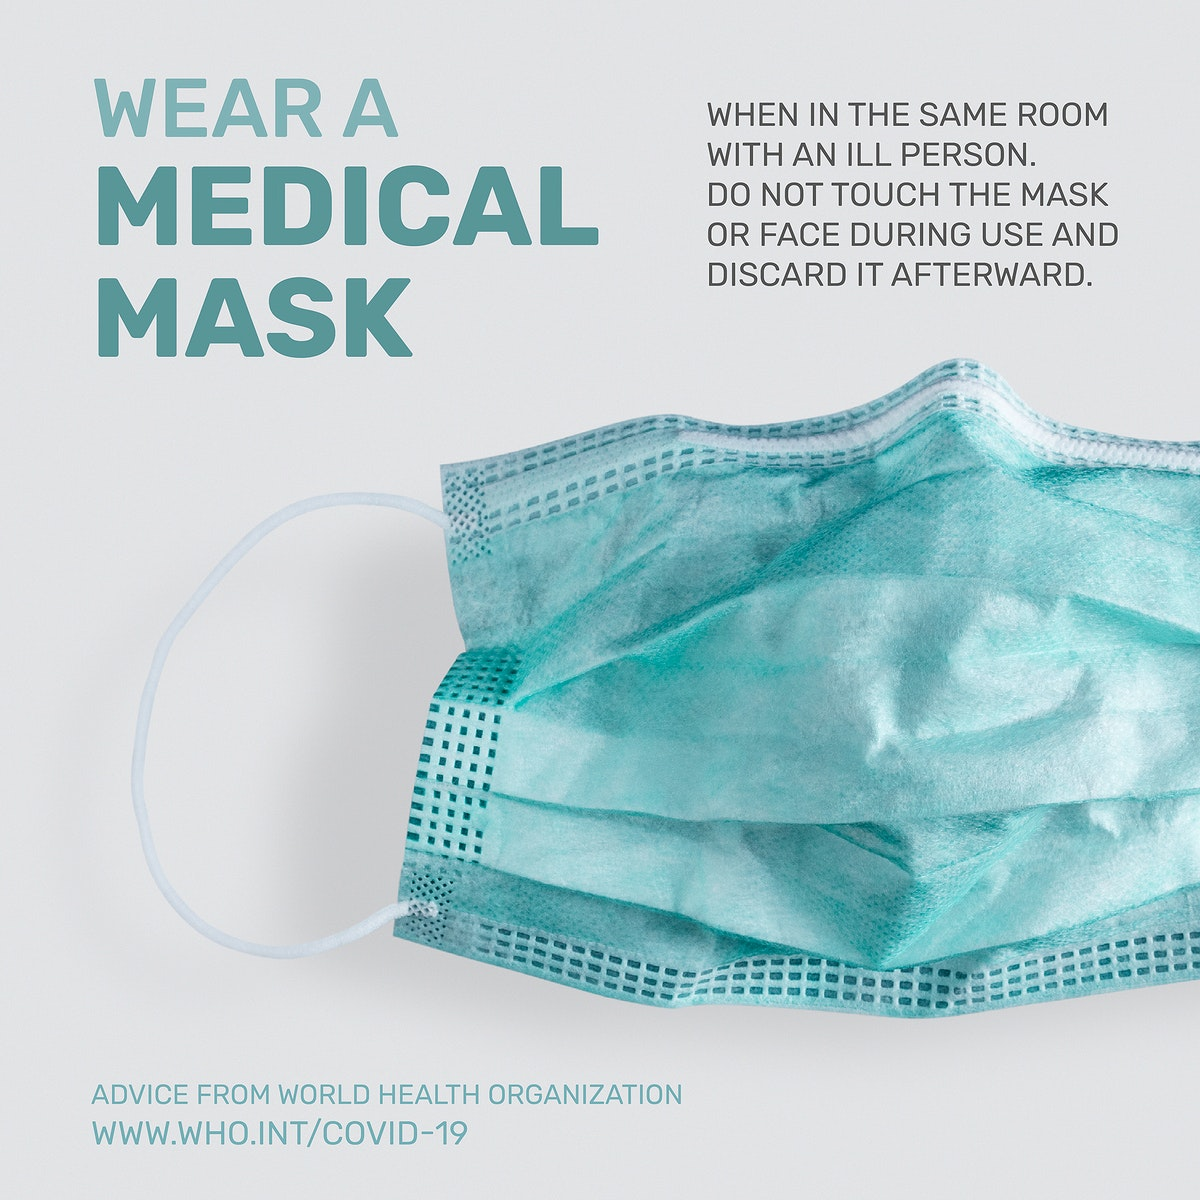 Wear a mask COVID-19 pandemic advice by WHO vector social ad